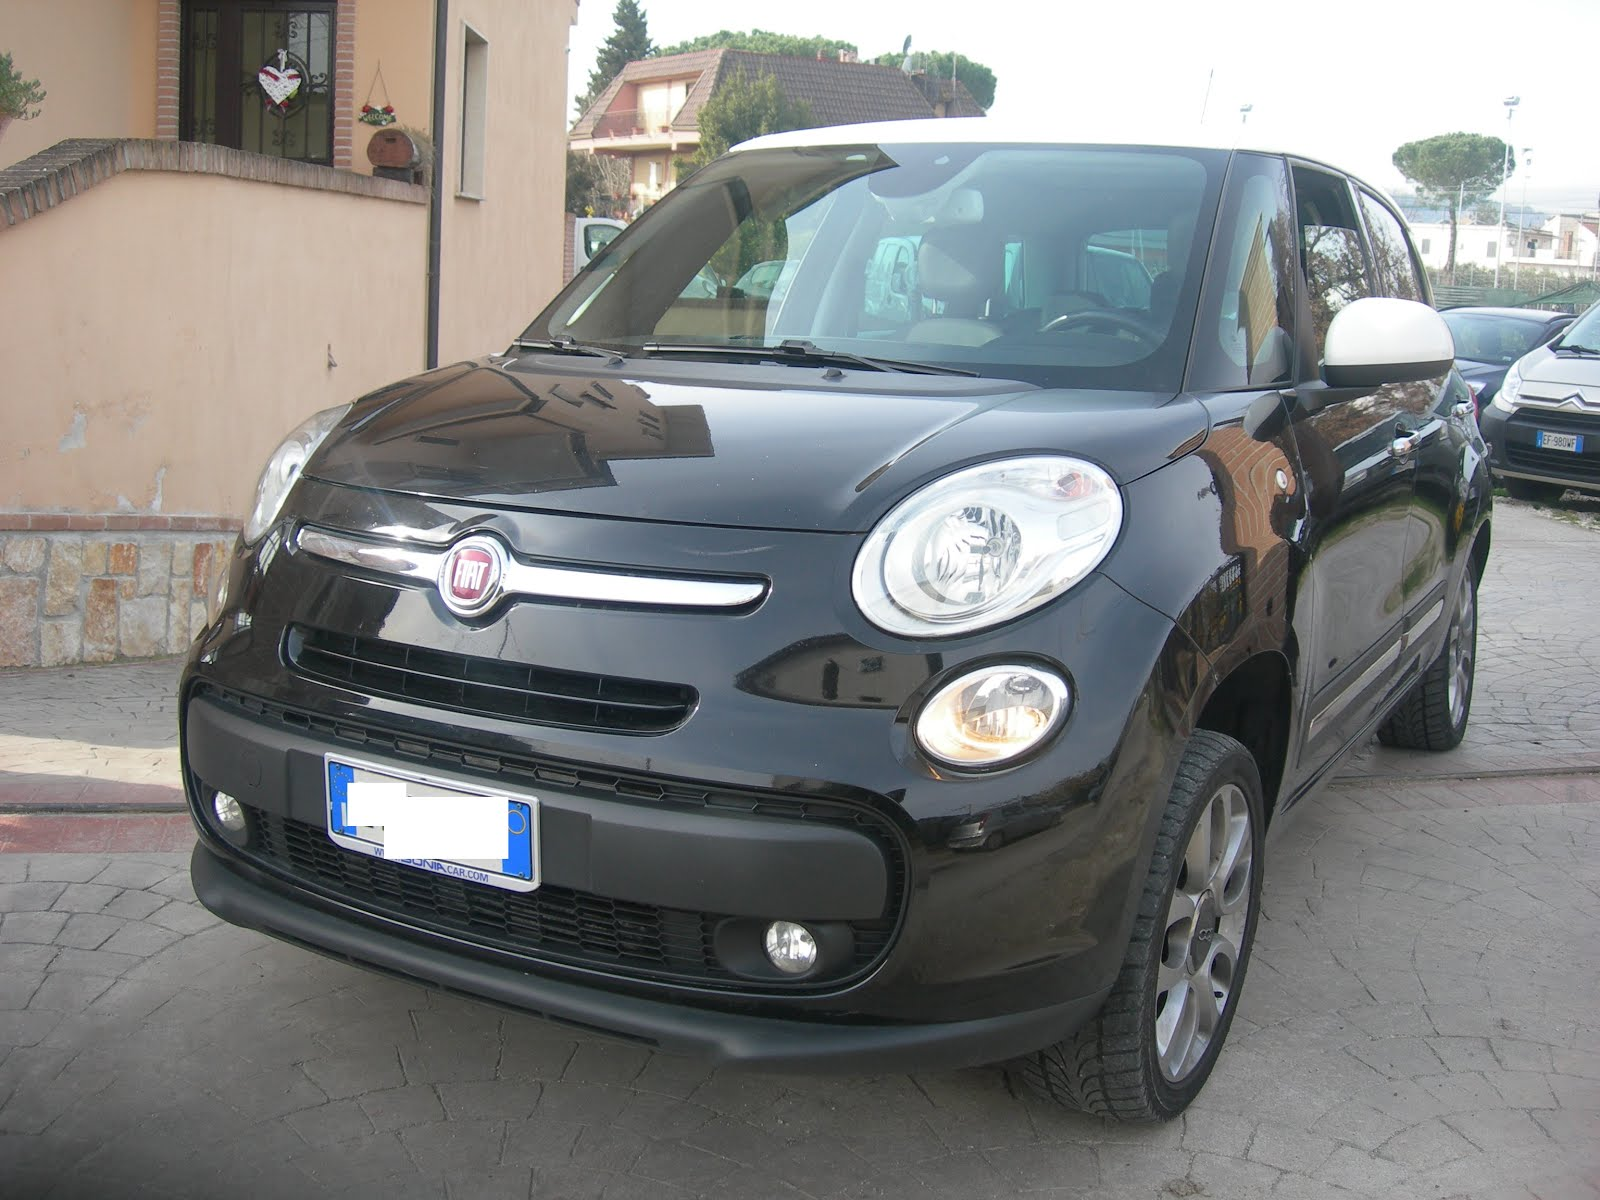 FIAT 500L 900 TWIN AIR TURBO N.POWER METANO LOUNGE 90.000 KM ACC: FULL PREZZO 12.000,00 EURO